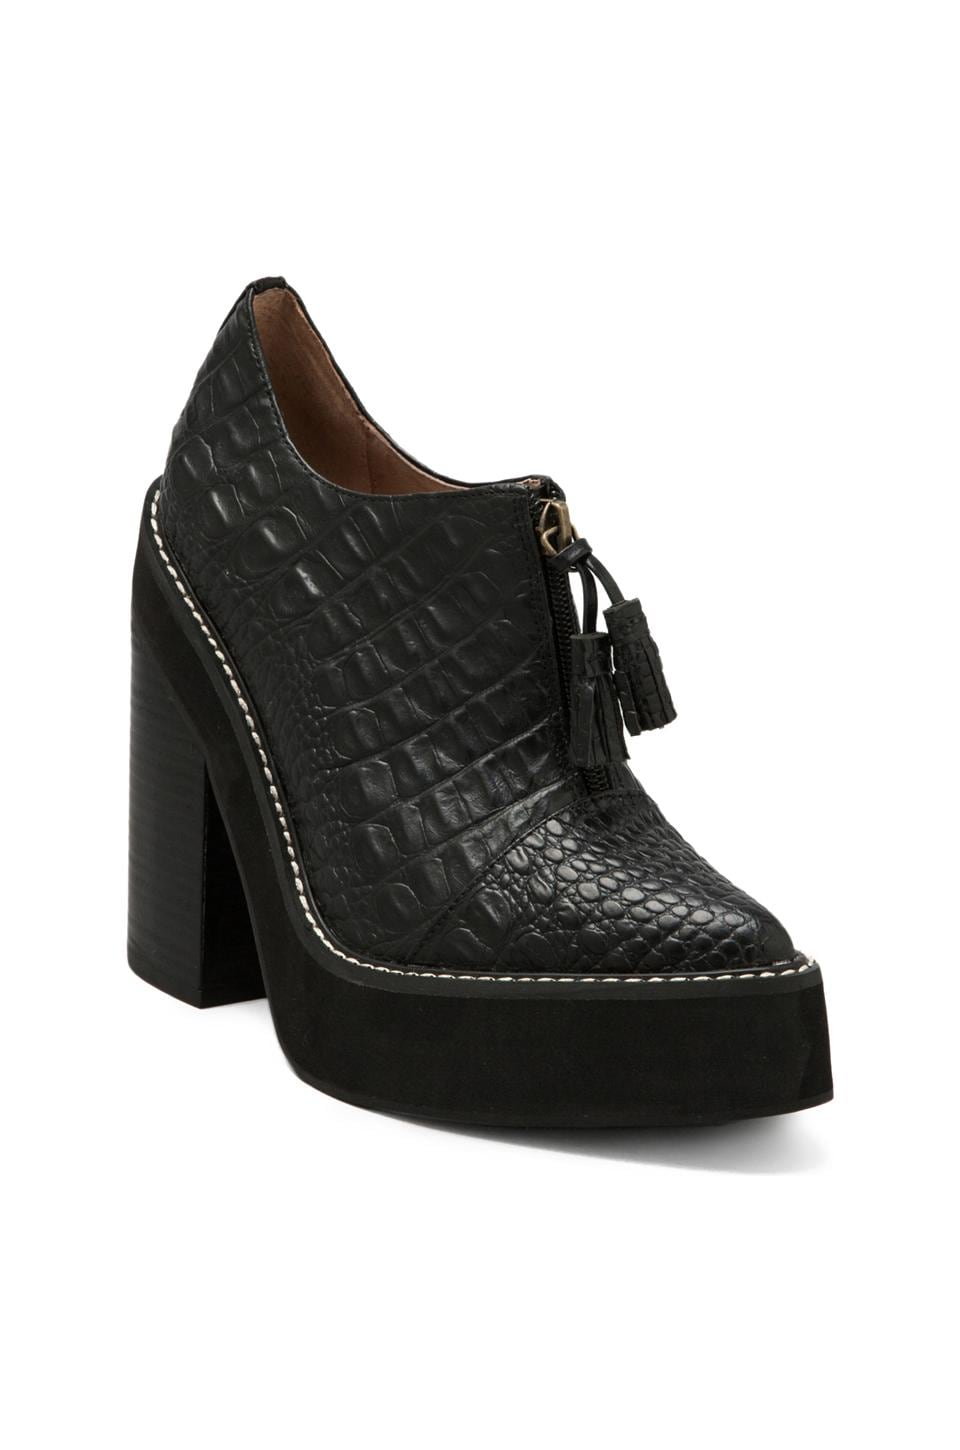 Jeffrey Campbell Fink in Black Croc